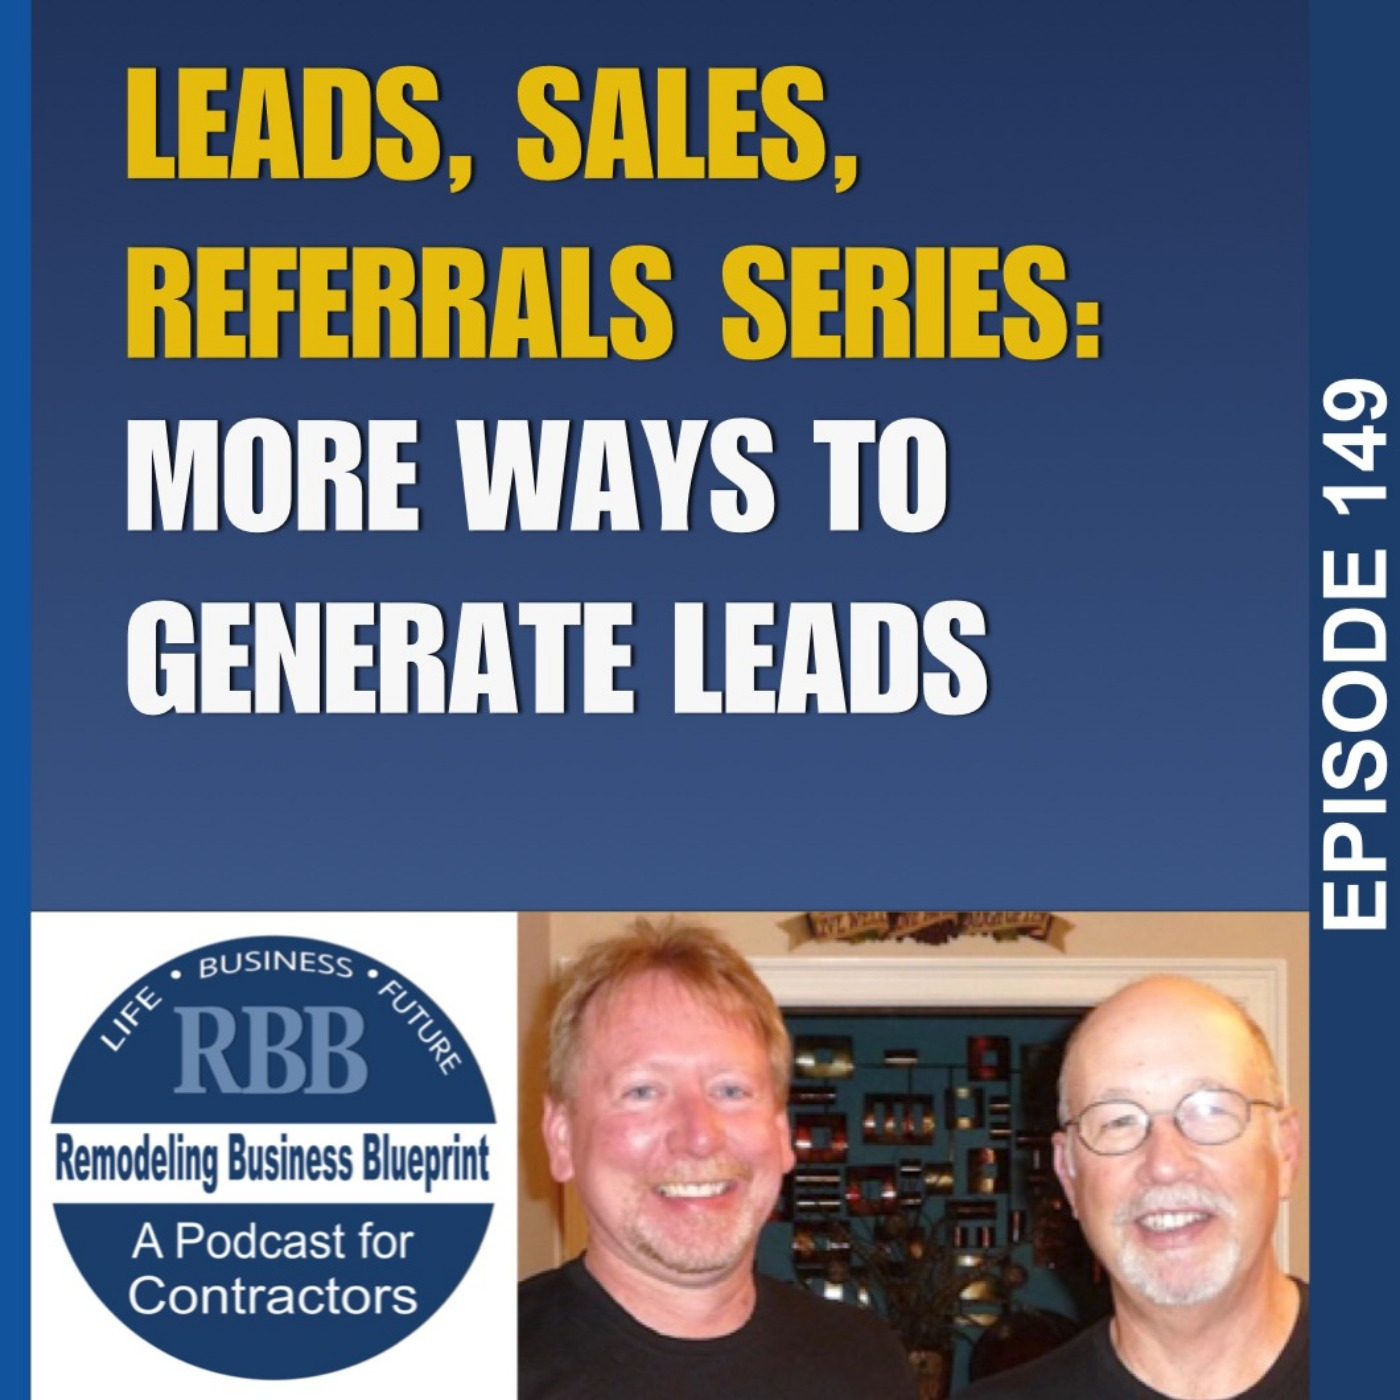 More Ways To Generate Leads